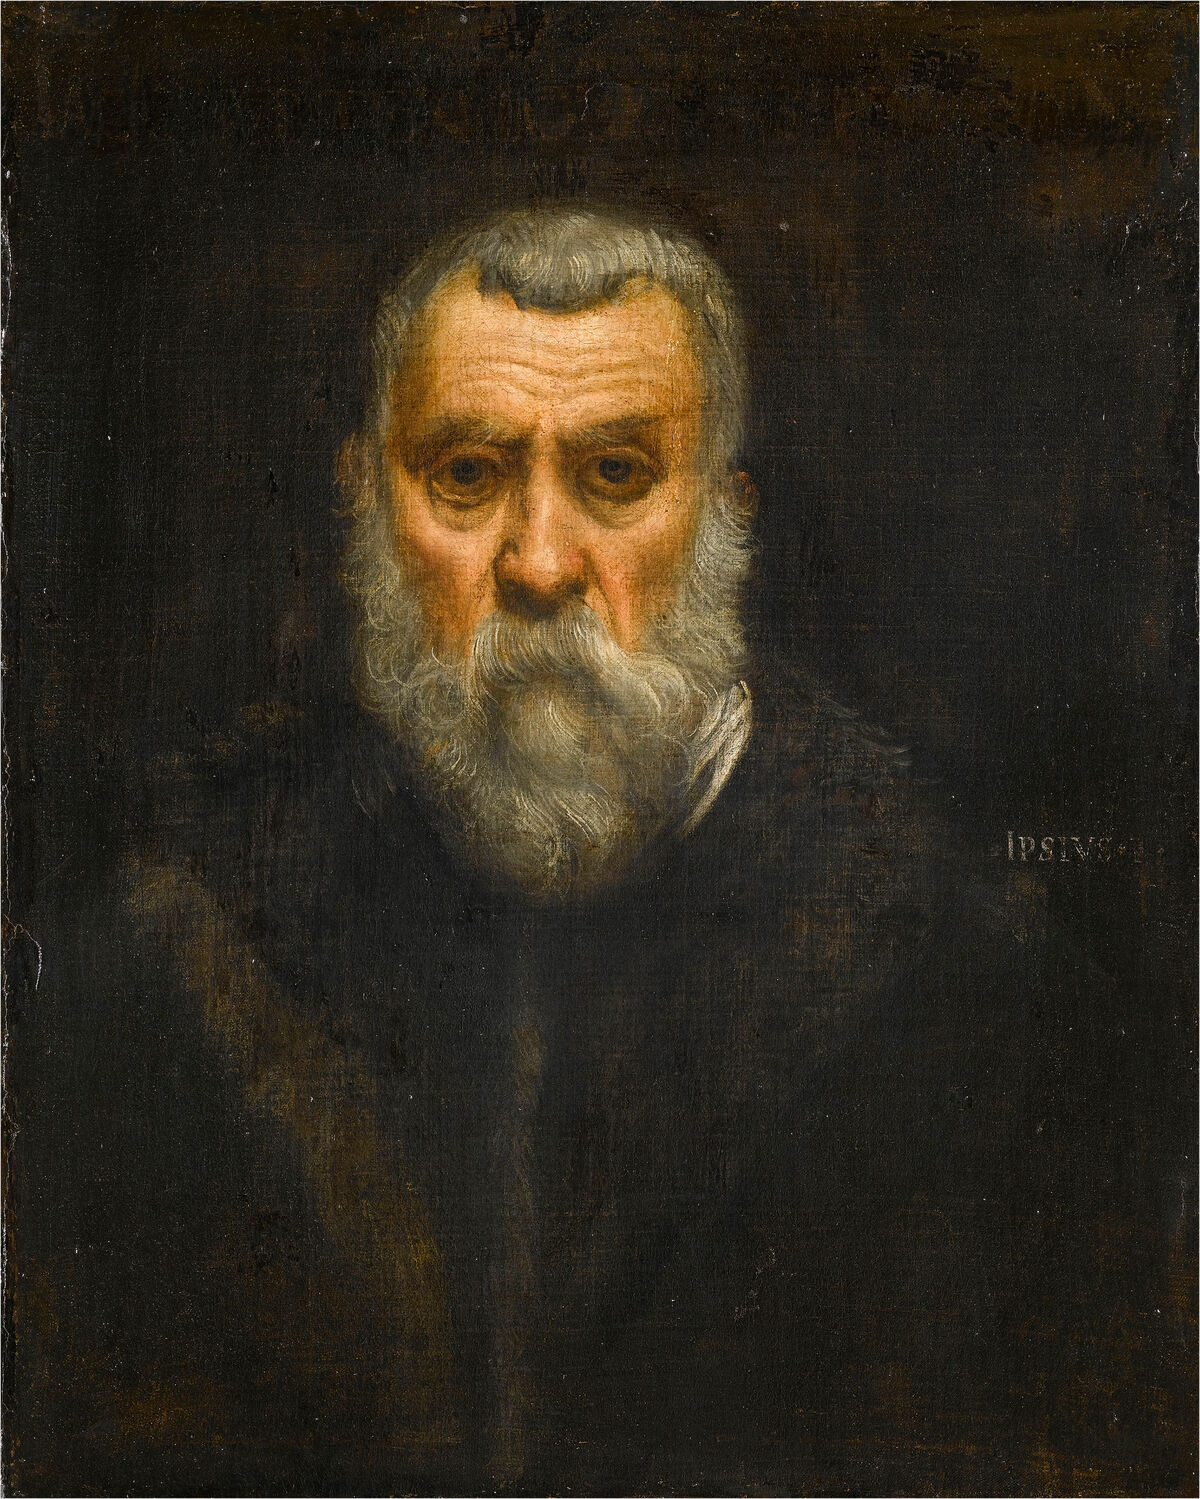 Jacopo Tintoretto, Self-Portrait, c. 1588. © RMN-Grand Palais / Art Resource, NY, Jean Gilles-Berizzi. Courtesy of the National Gallery of Art.